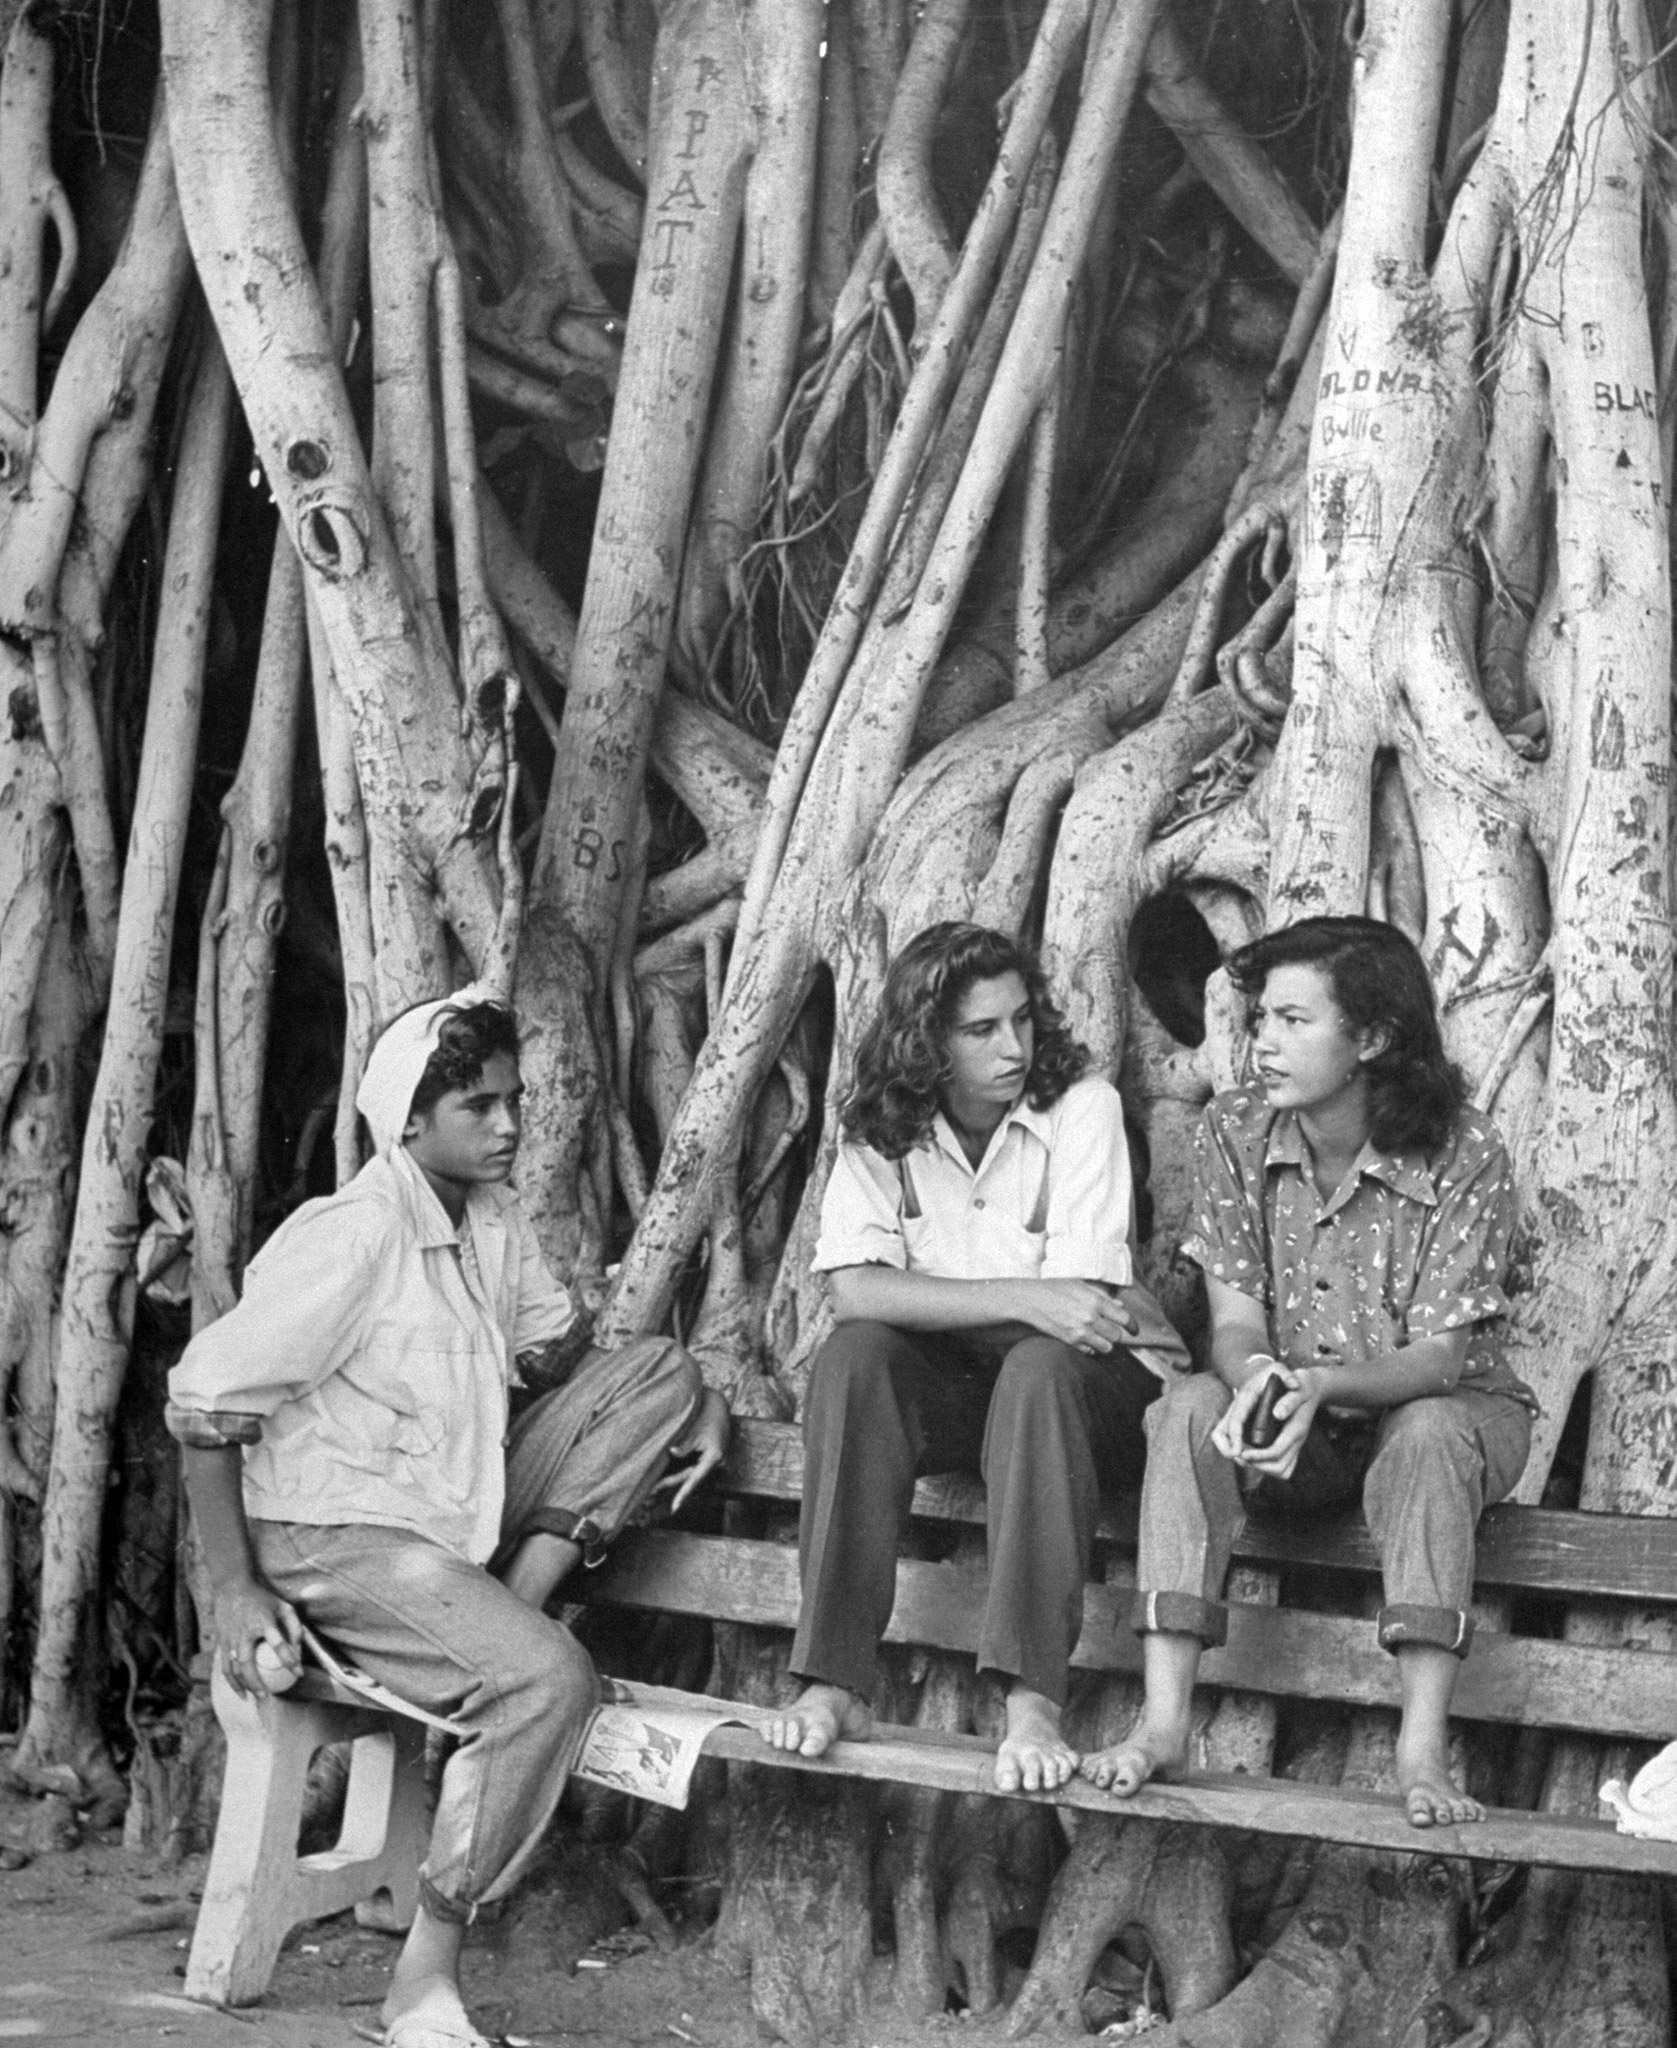 <b>Caption from LIFE.</b> Waikiki tomboys, under a banyon on beach are (from left) Marion Woolsley, 14, Chinese-Hawaiian-English; Patricia Cameron, 16, Portuguese-Scotch-Irish; Beatrice Clarke, 16, Hawaiian-Chinese-German. Canoes are stored under roots.